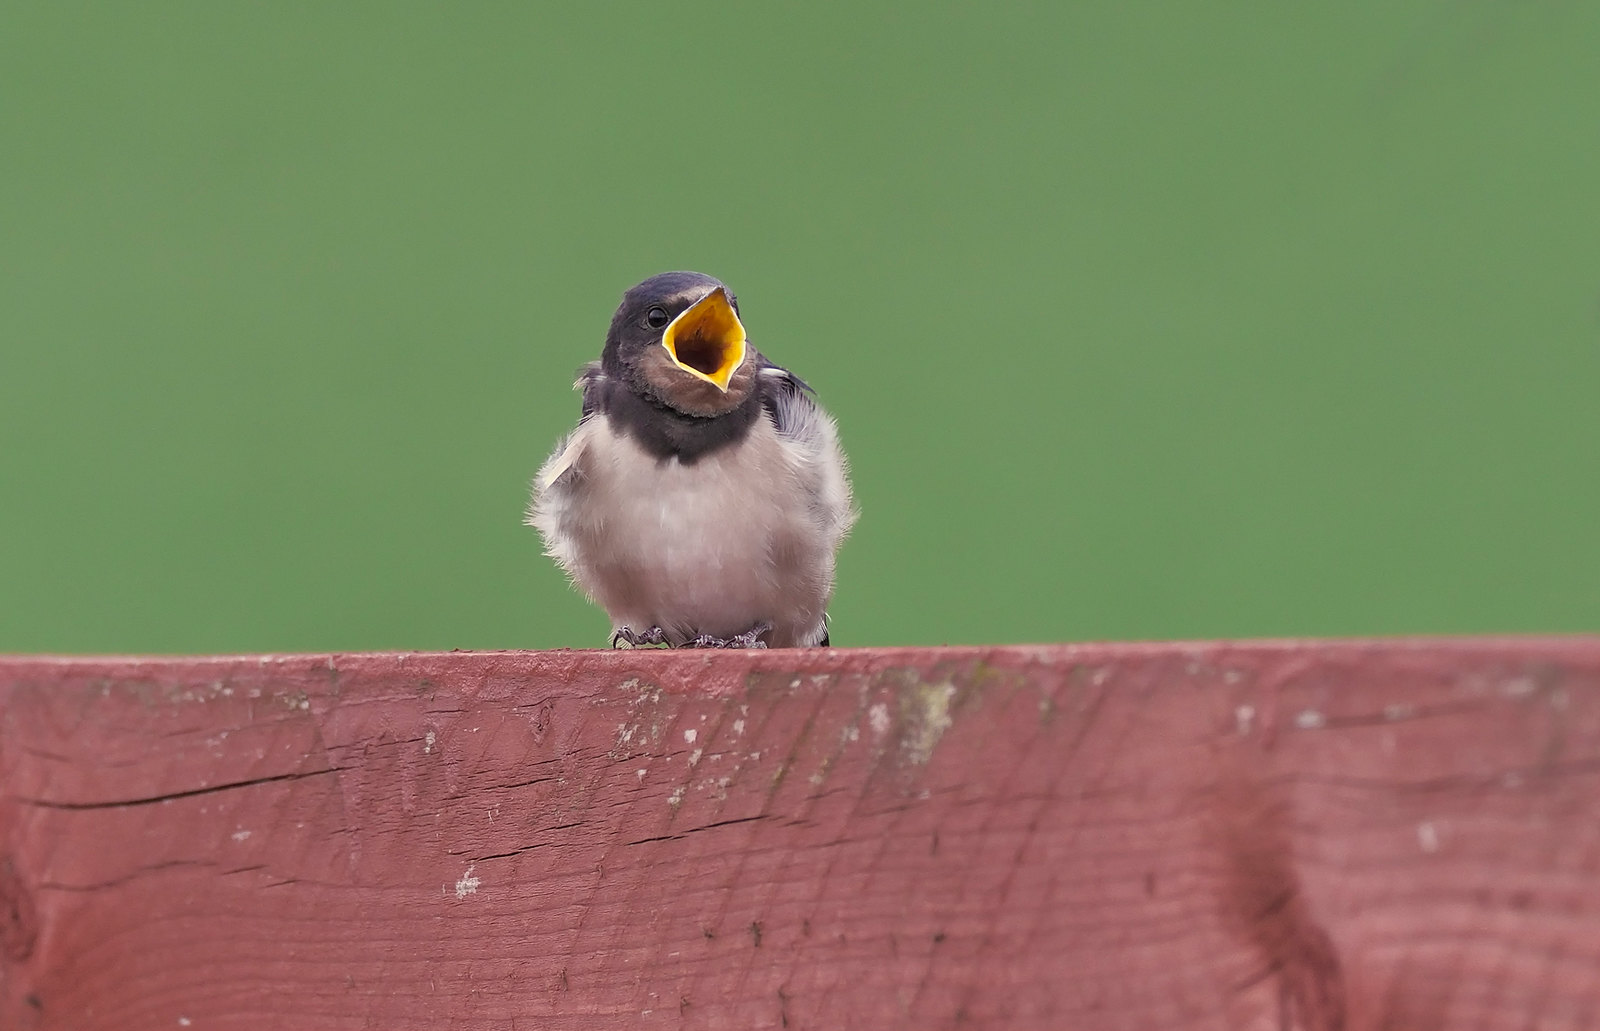 New Swallows on the farm - what a gob!